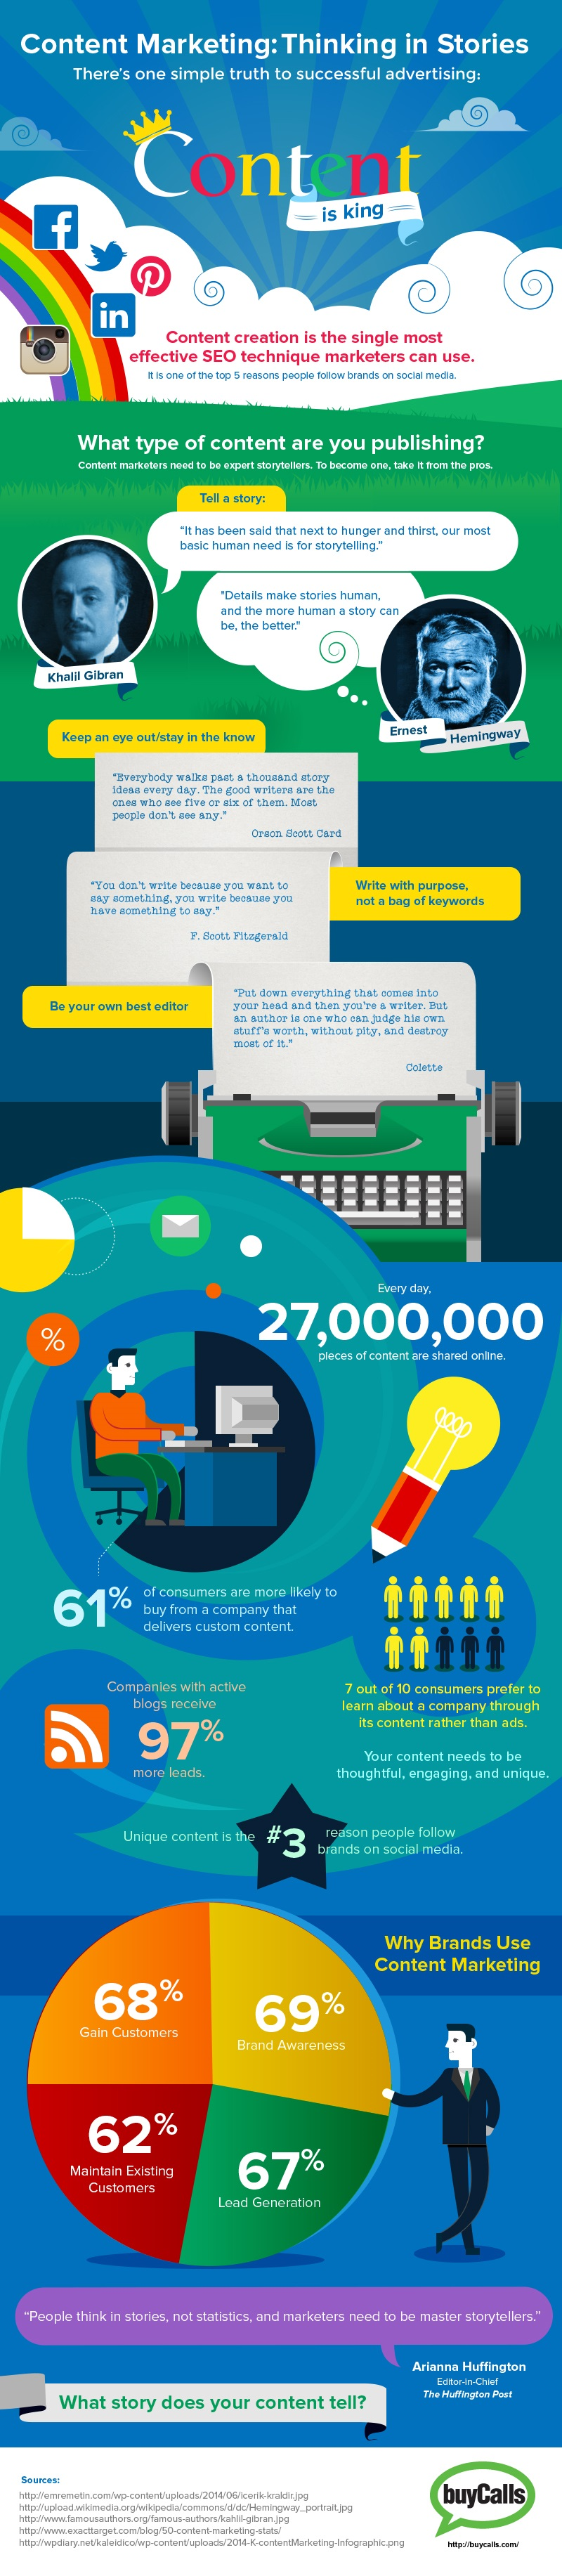 Content Marketing: Thinking in Stories - An Infographic from uCollect Infographics